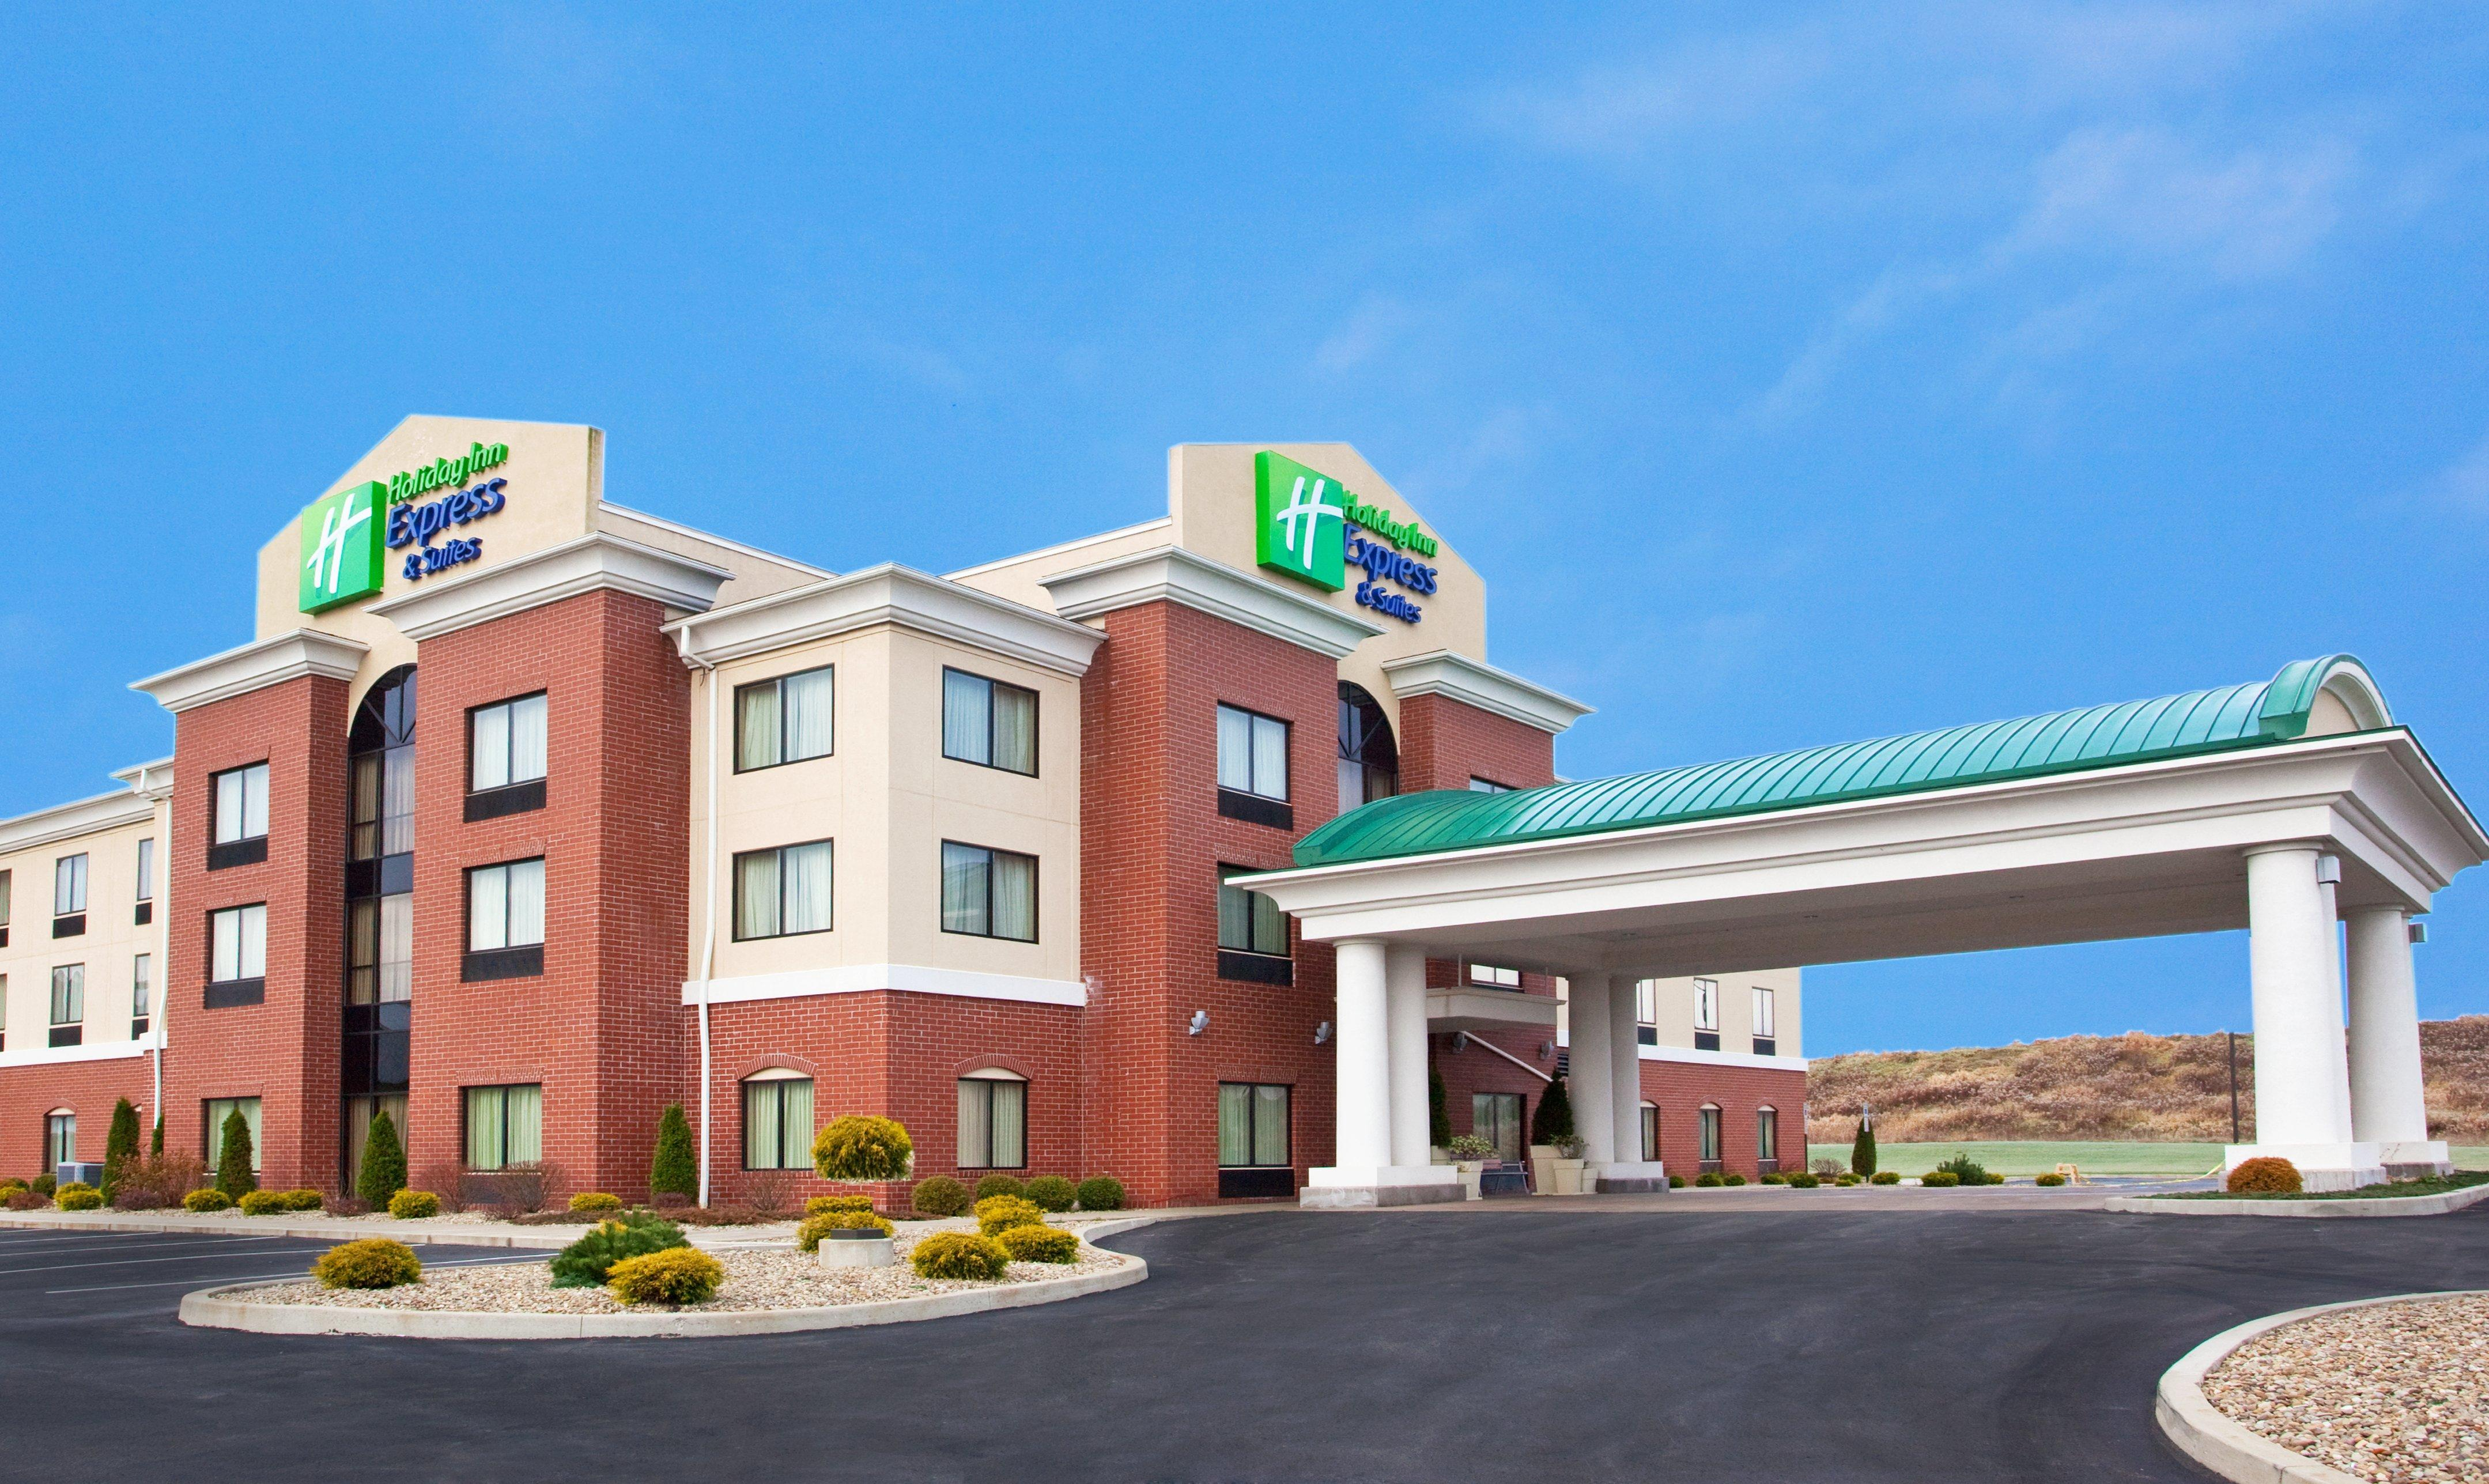 Holiday Inn Express Hotel & Suites Franklin - Oil , Venango